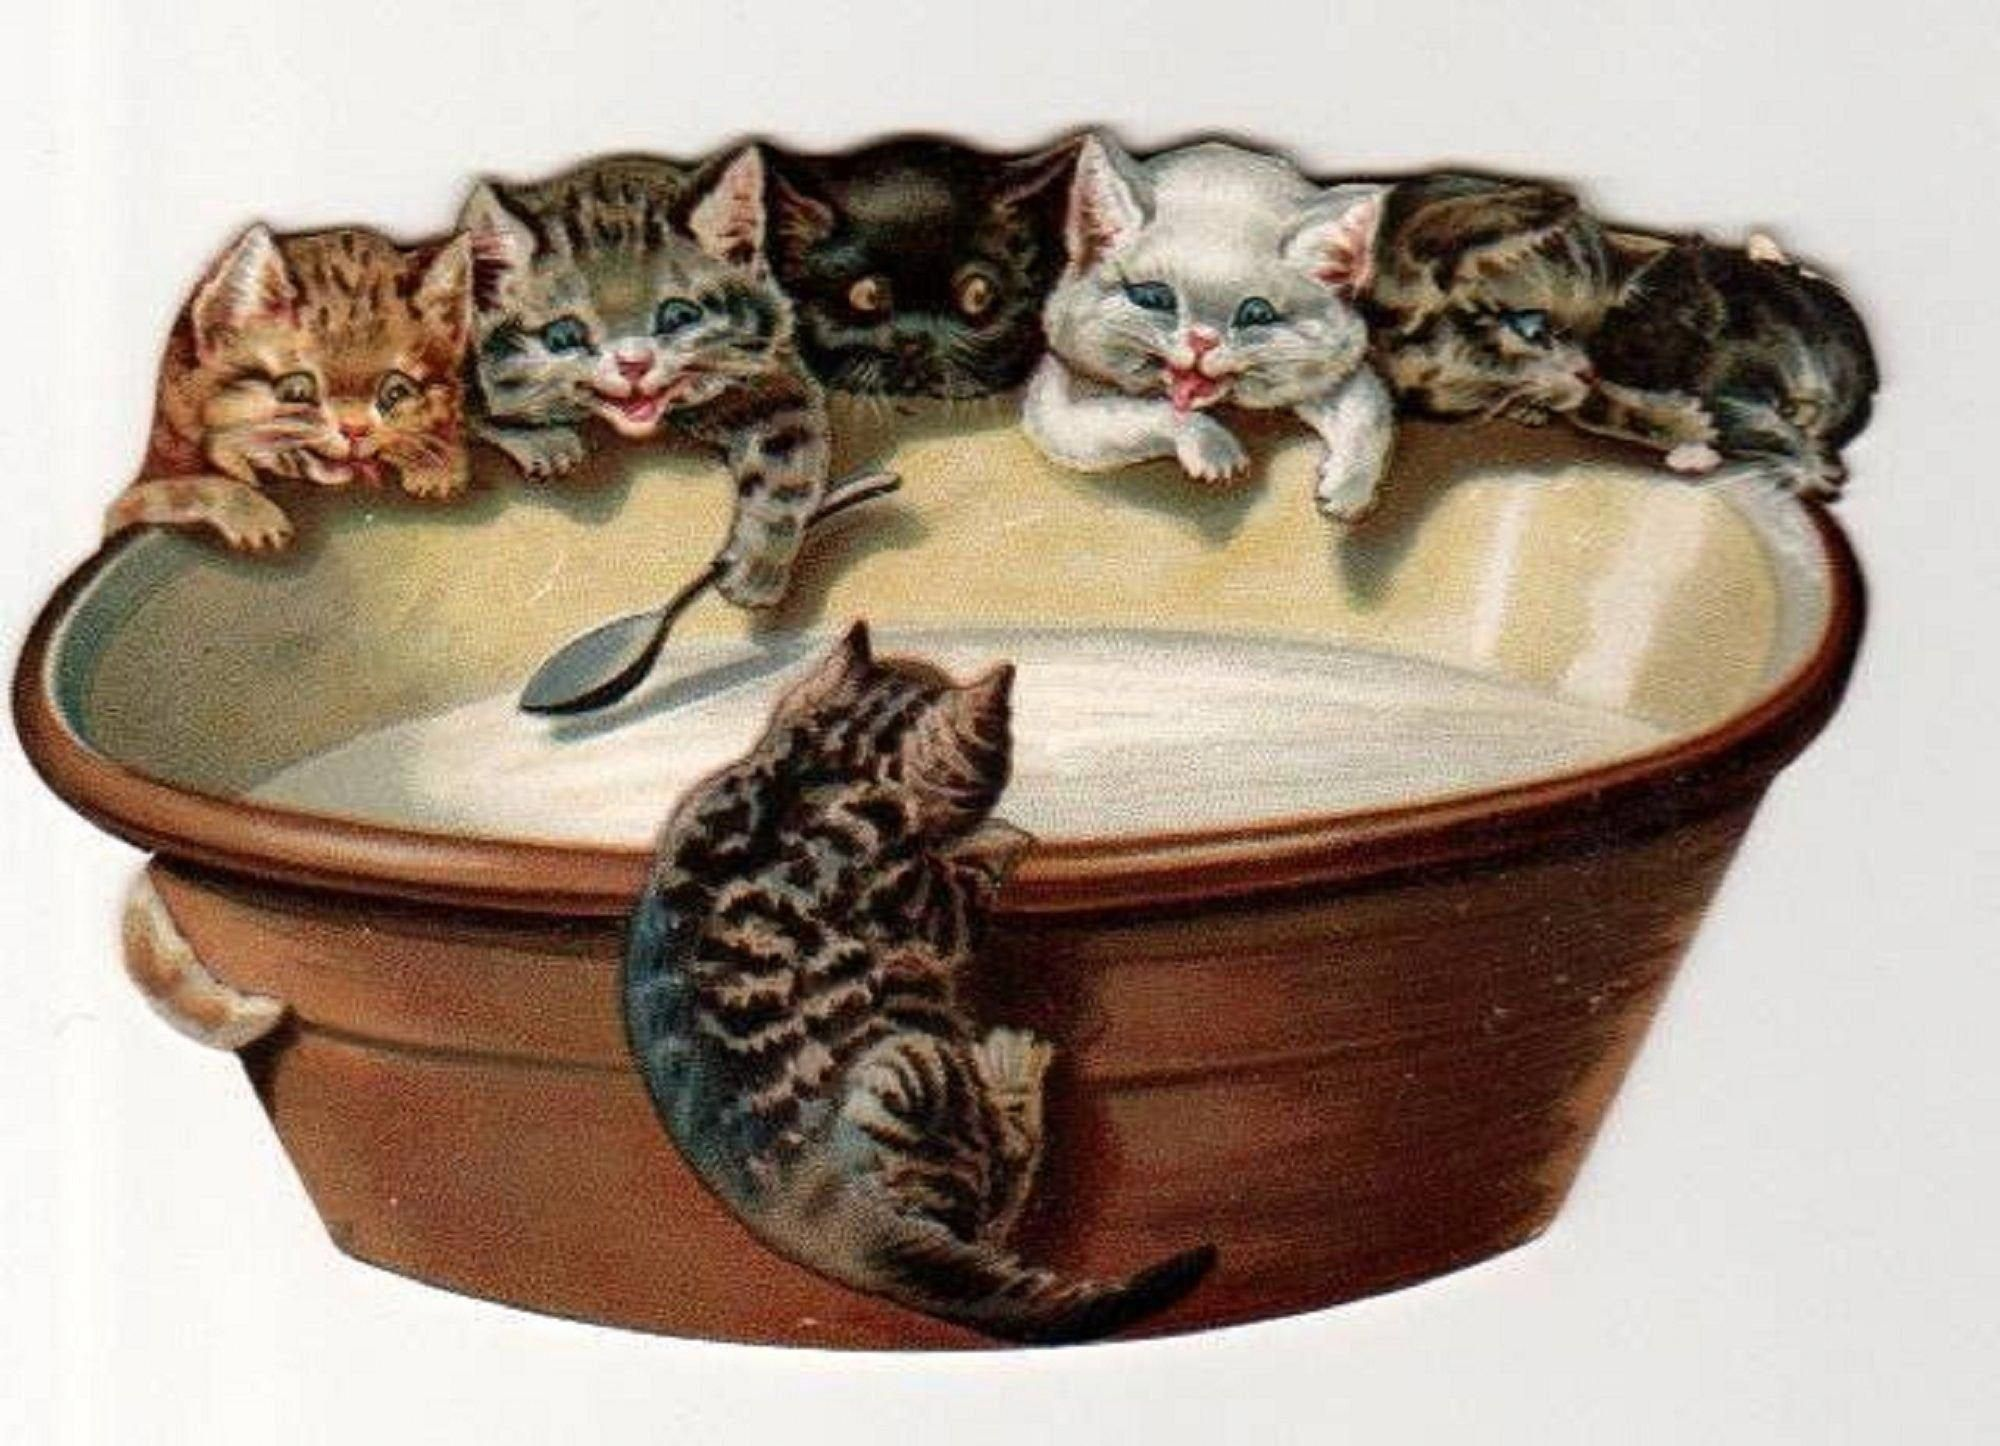 Cat Illustrations Drawings Cute Kittens Drinking Milk Best Cats Images Wall Art Gift For A Cat Lover Wall Home Decor Ki Cats Illustration Vintage Cat Cat Art